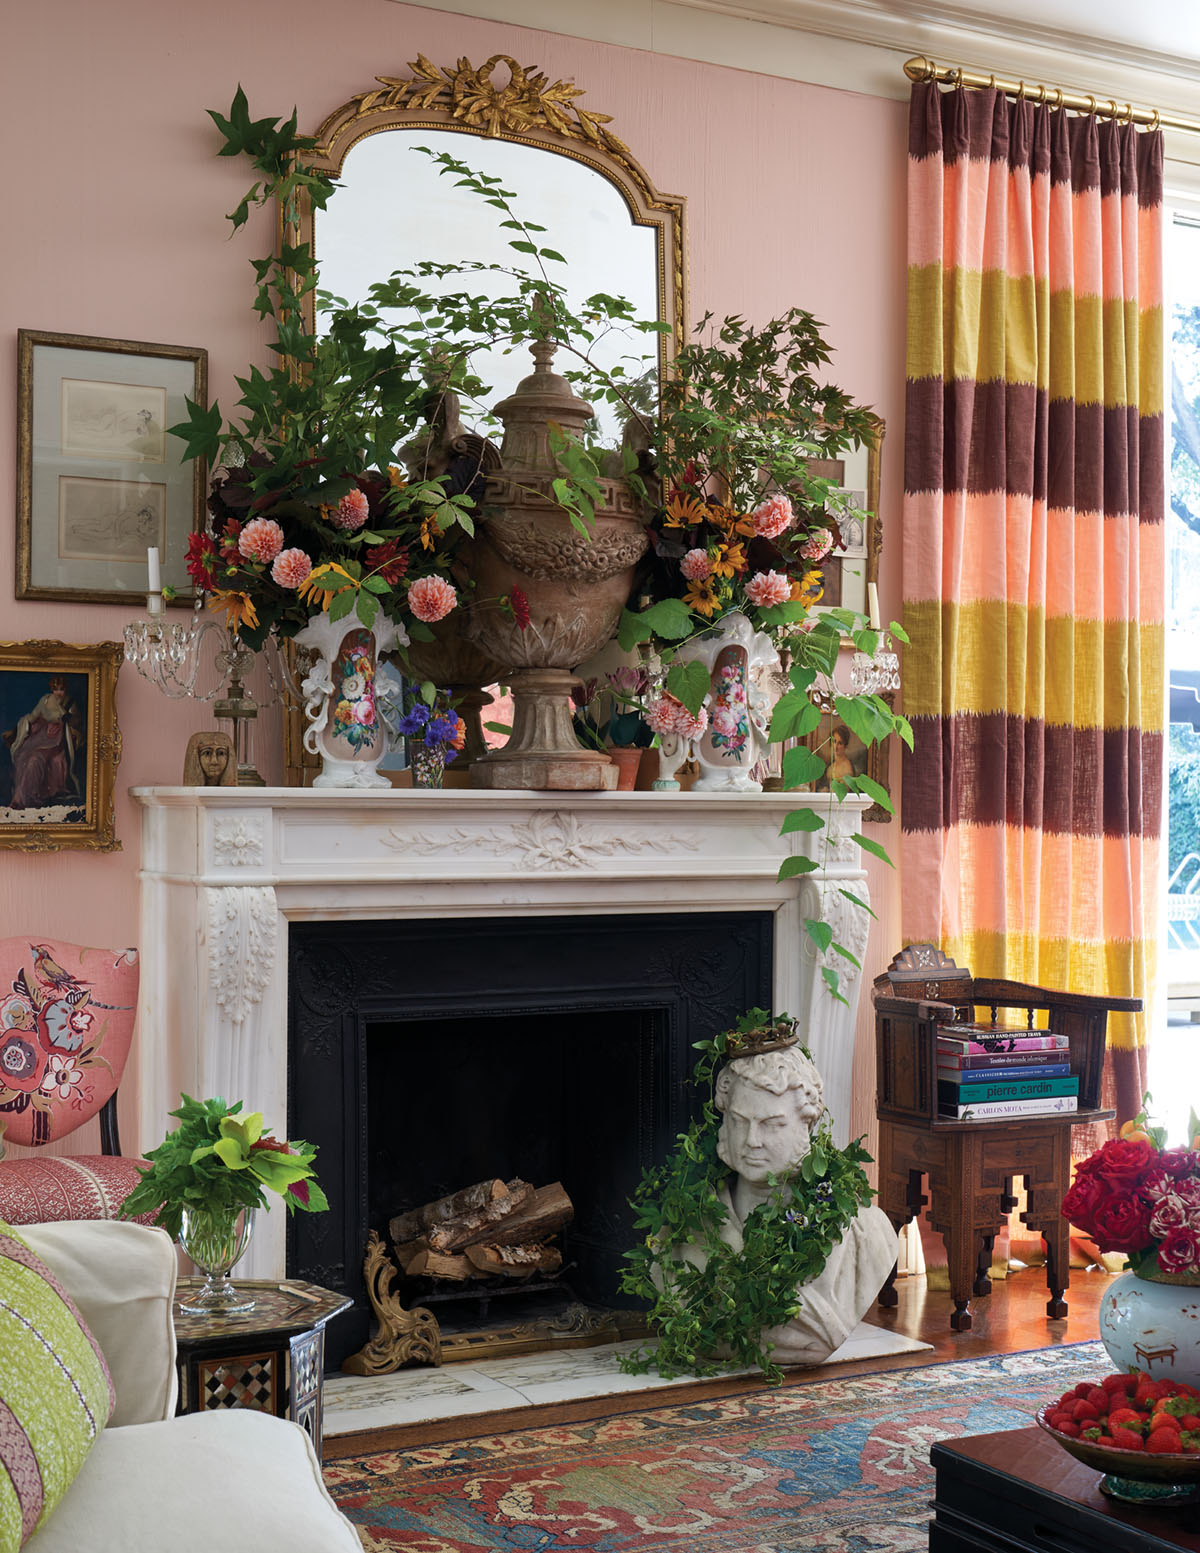 Michelle Nussbaumer's house, mantel covered in vases of lush floral arrangements, gilt mirror, pink walls, oriental rug, and drapery panels with horizontal strips of pink, green, and chocolate brown